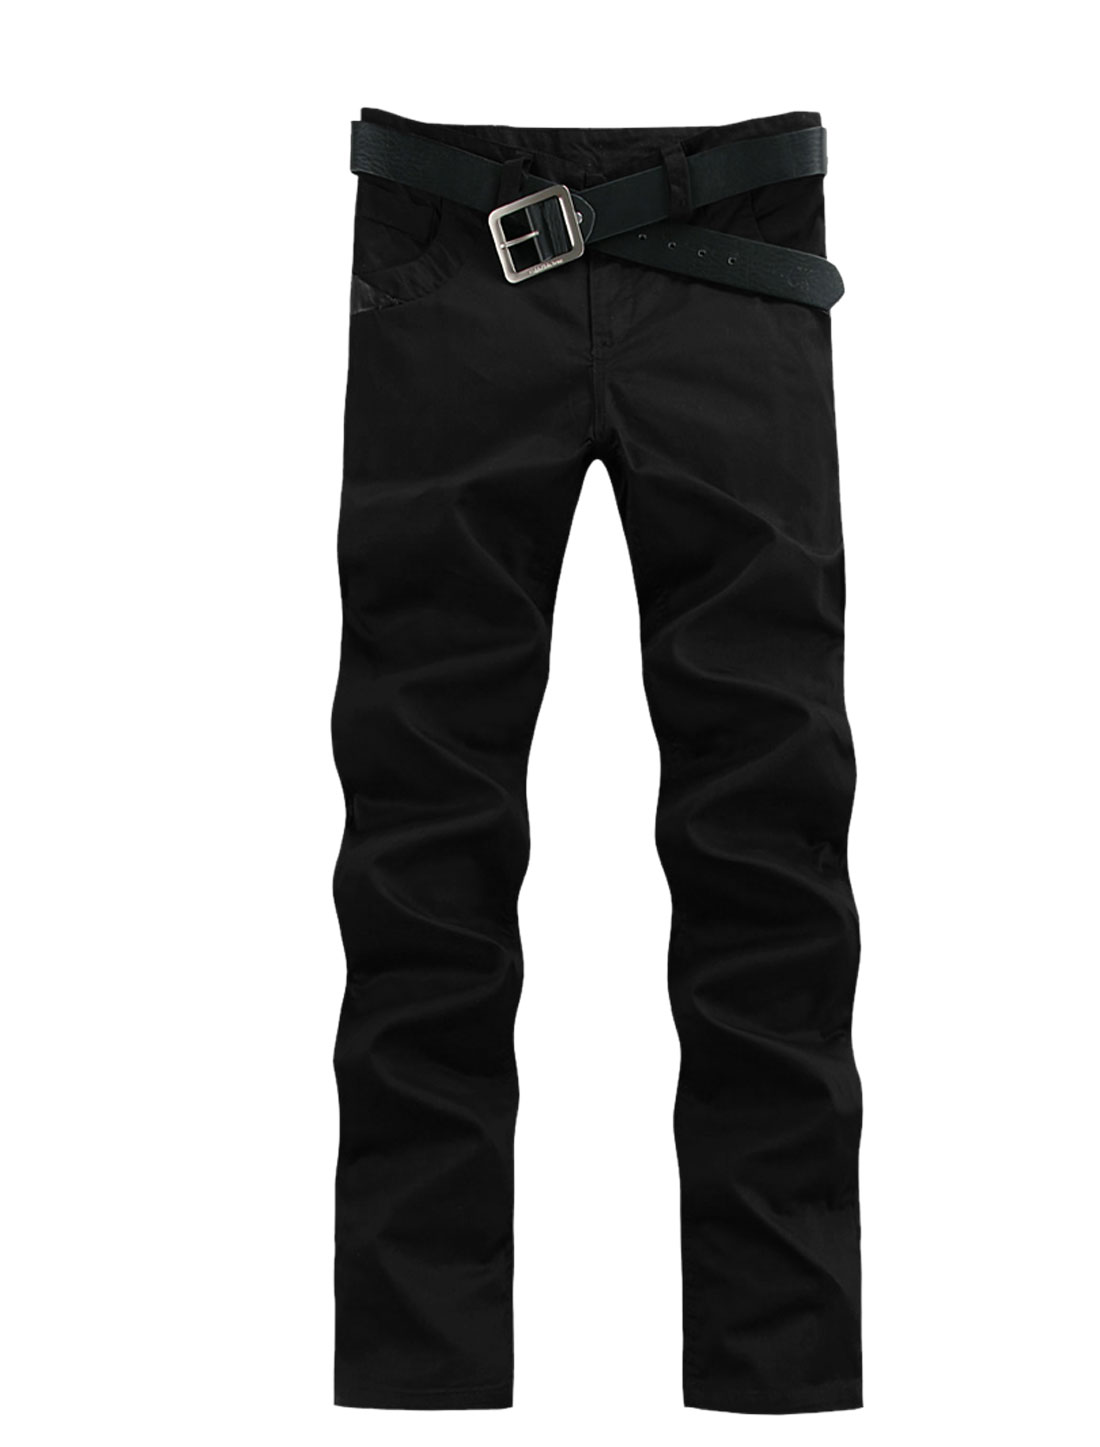 Men Zip Up Imitation Leather Loose Fit Pants Black W40